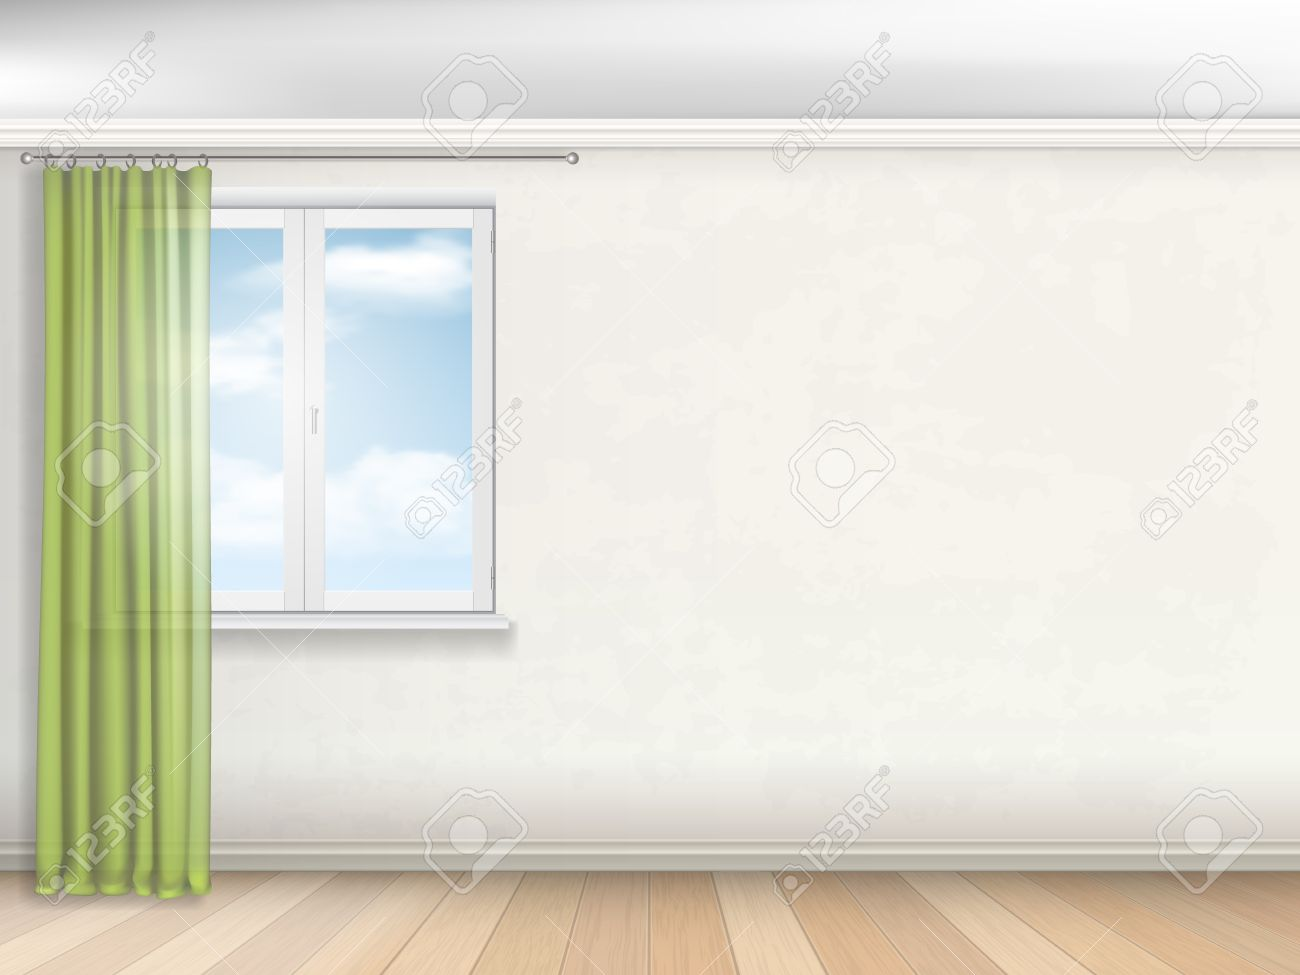 Interior Of Empty Room Window With Green Curtains On The Beige Wall Stock Vector